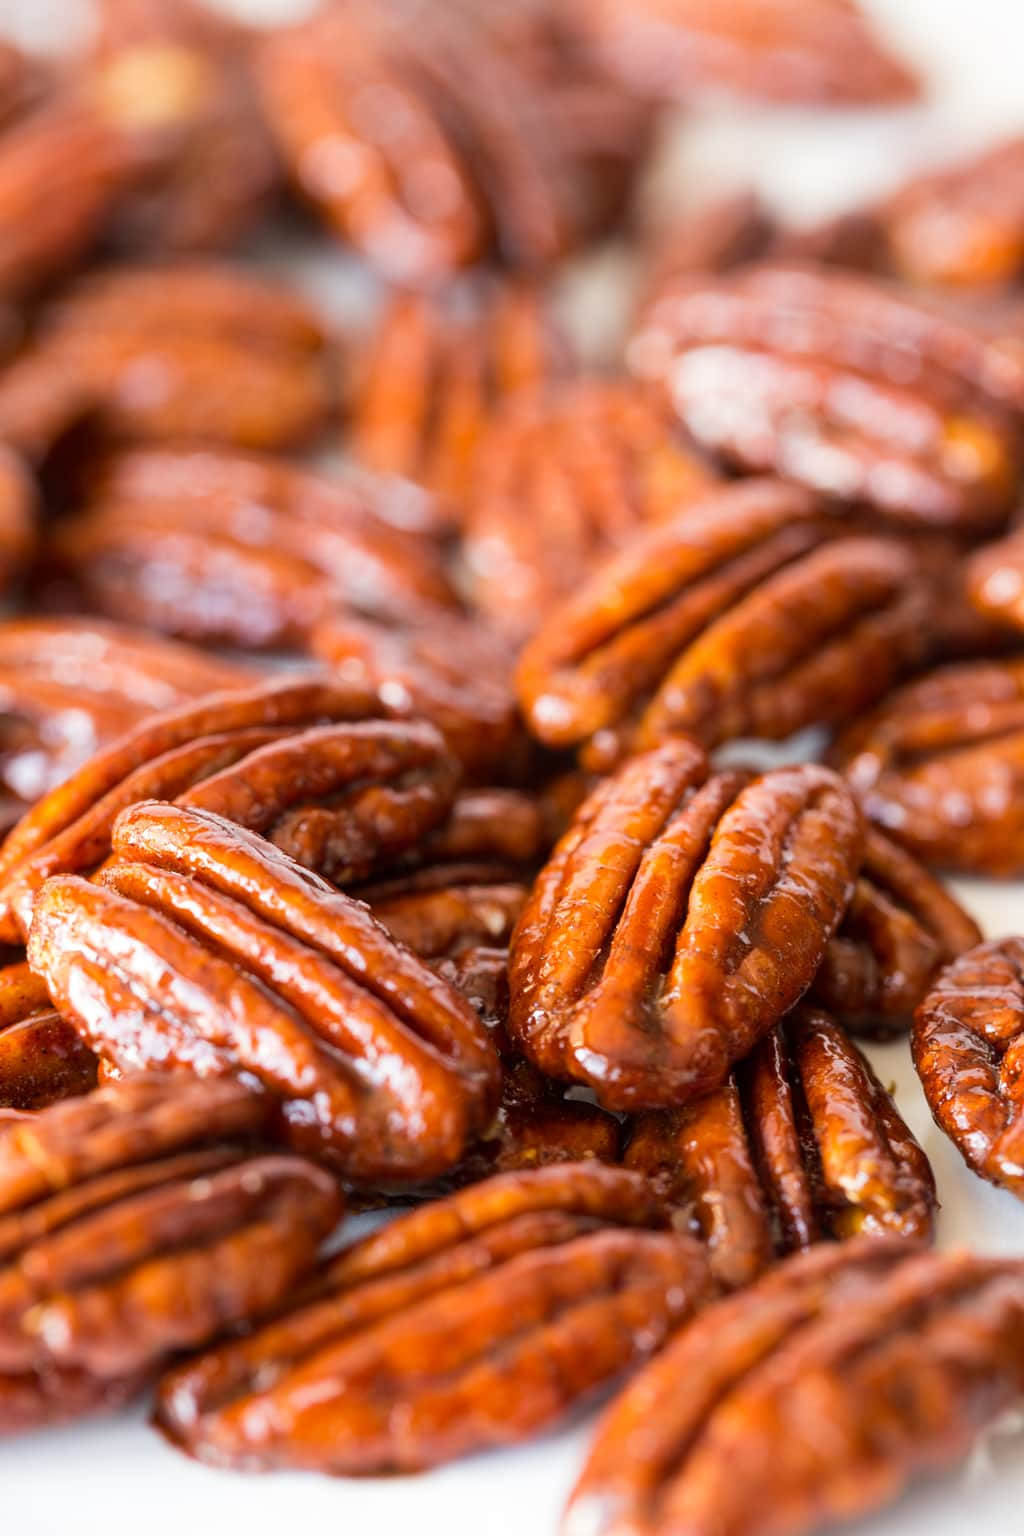 Maple Molasses Glazed Pecans - super easy and crazy delicious, these pecans are super delicious and fabulous as a snack or cocktail nibble, on salads, or desserts ... and they make a wonderful gift too! thecafesucrefarine.com